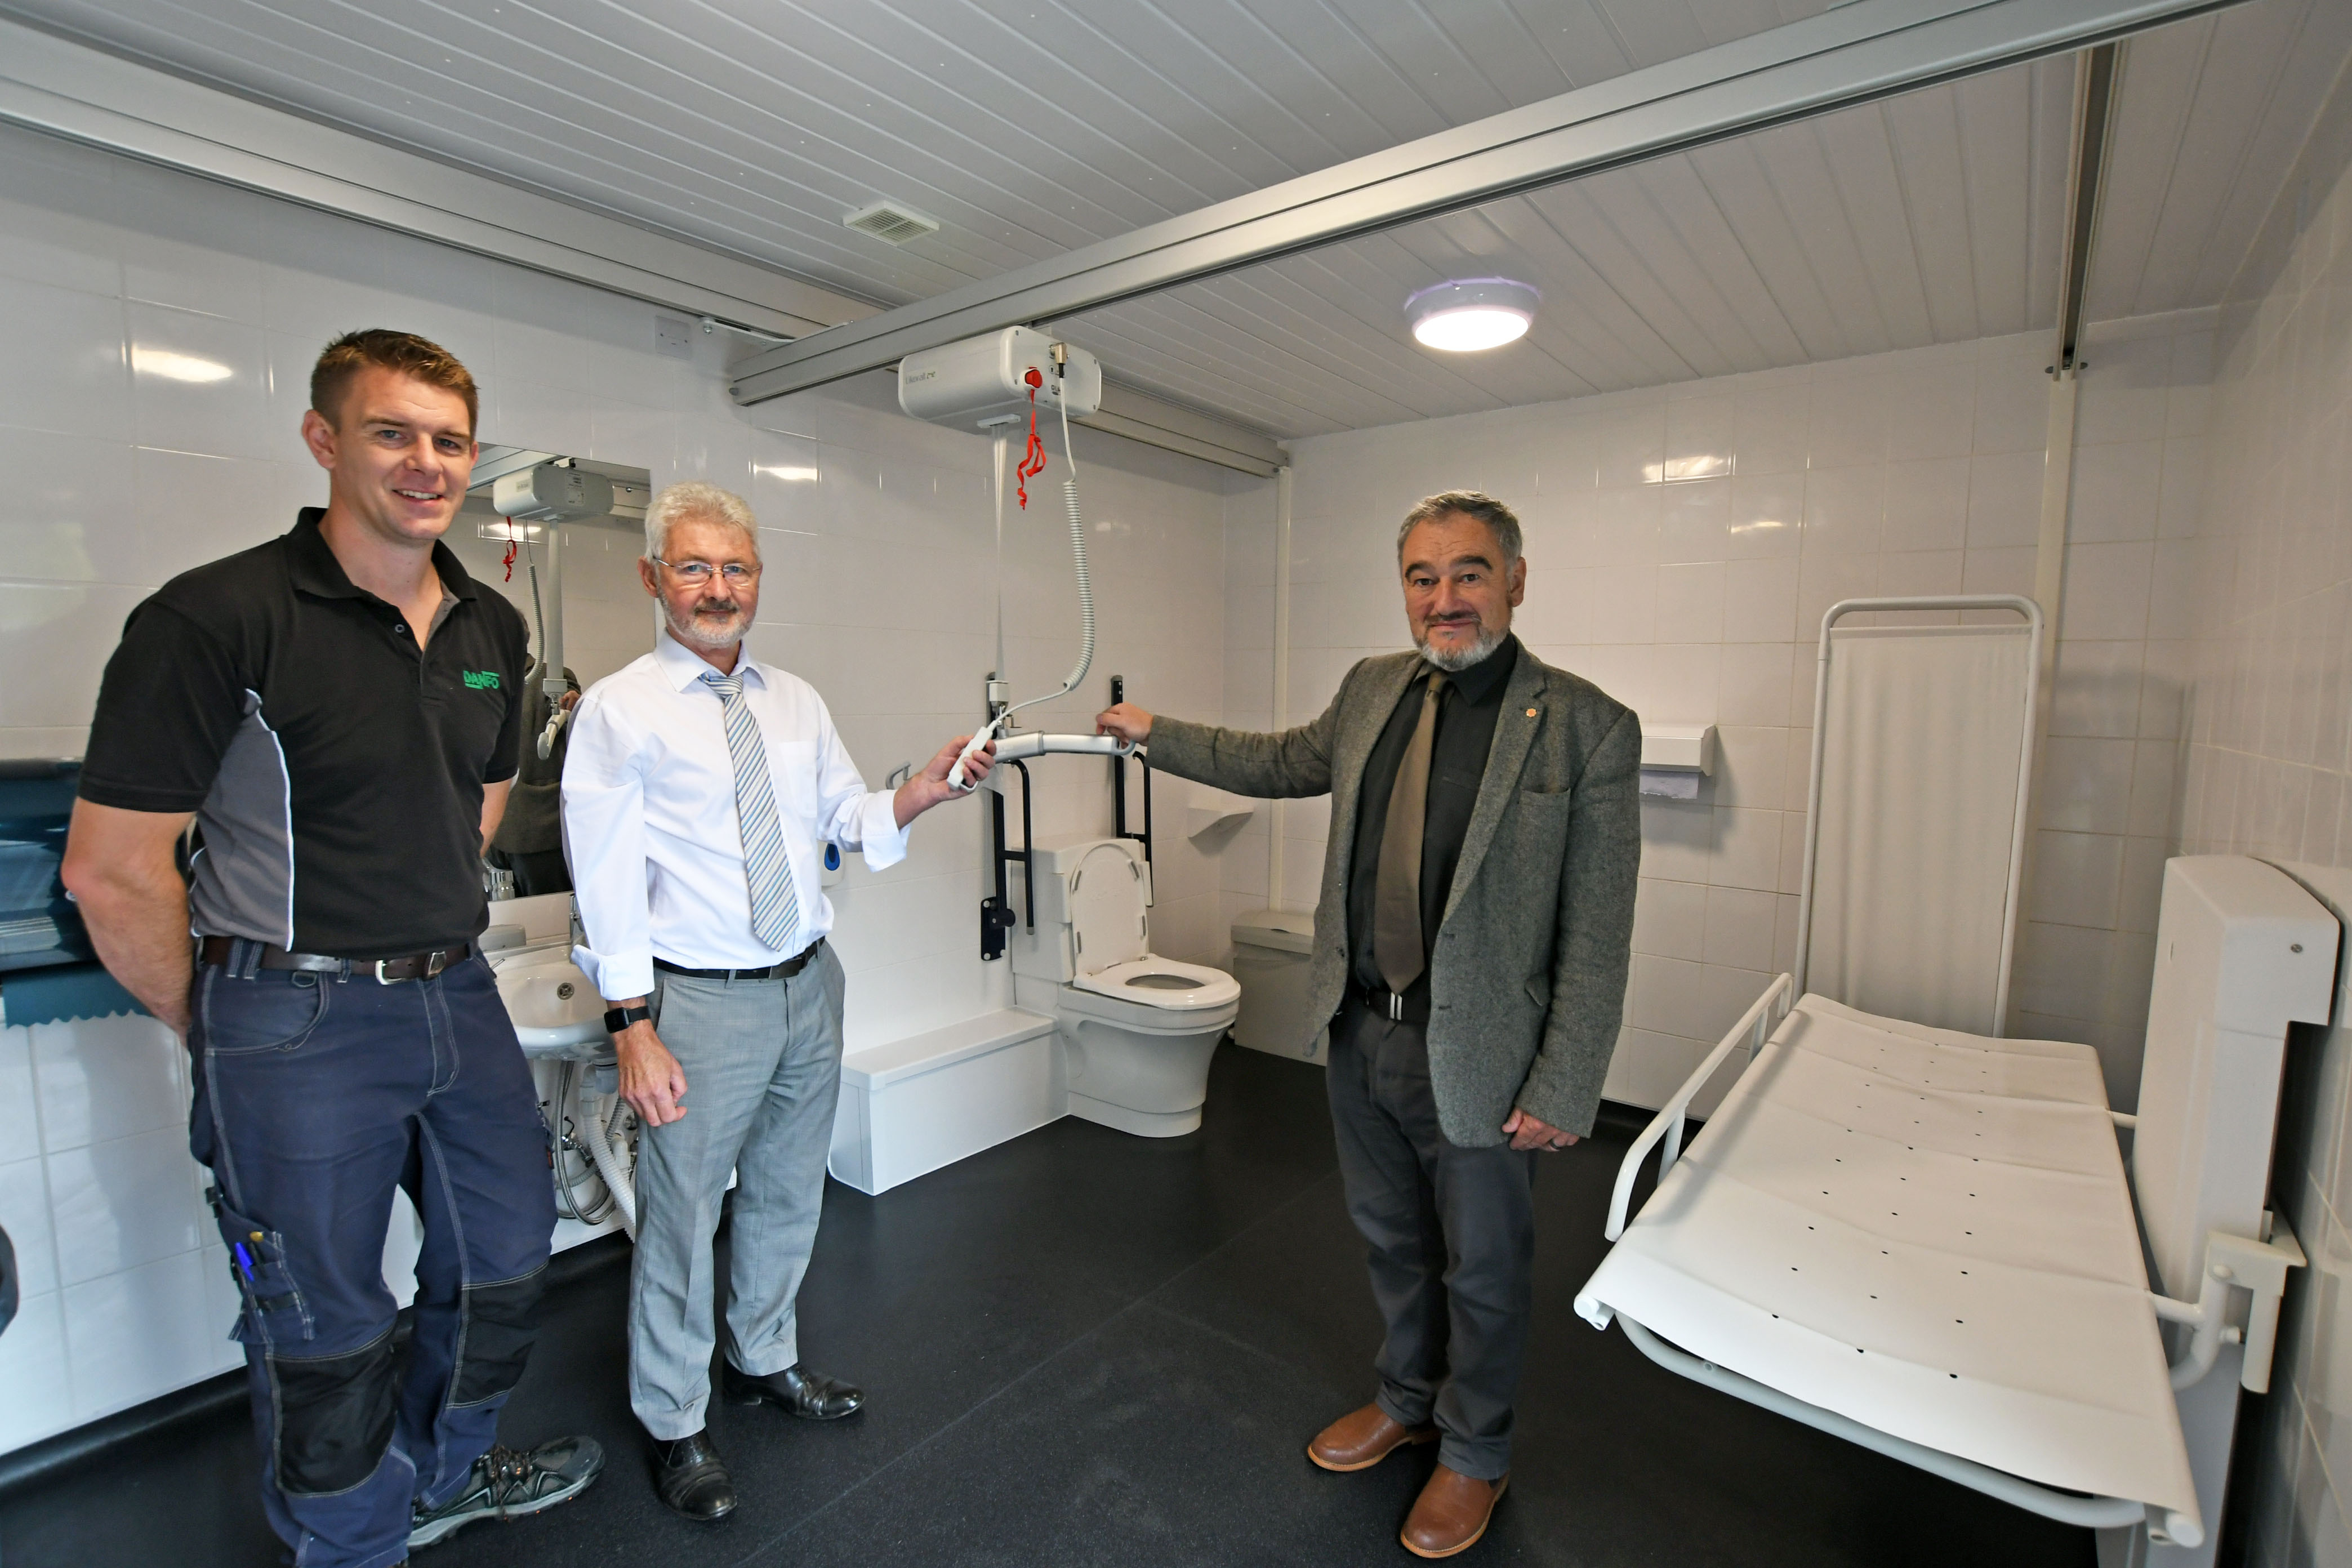 Tenby: \'State of the art\' toilets opened – The Pembrokeshire Herald